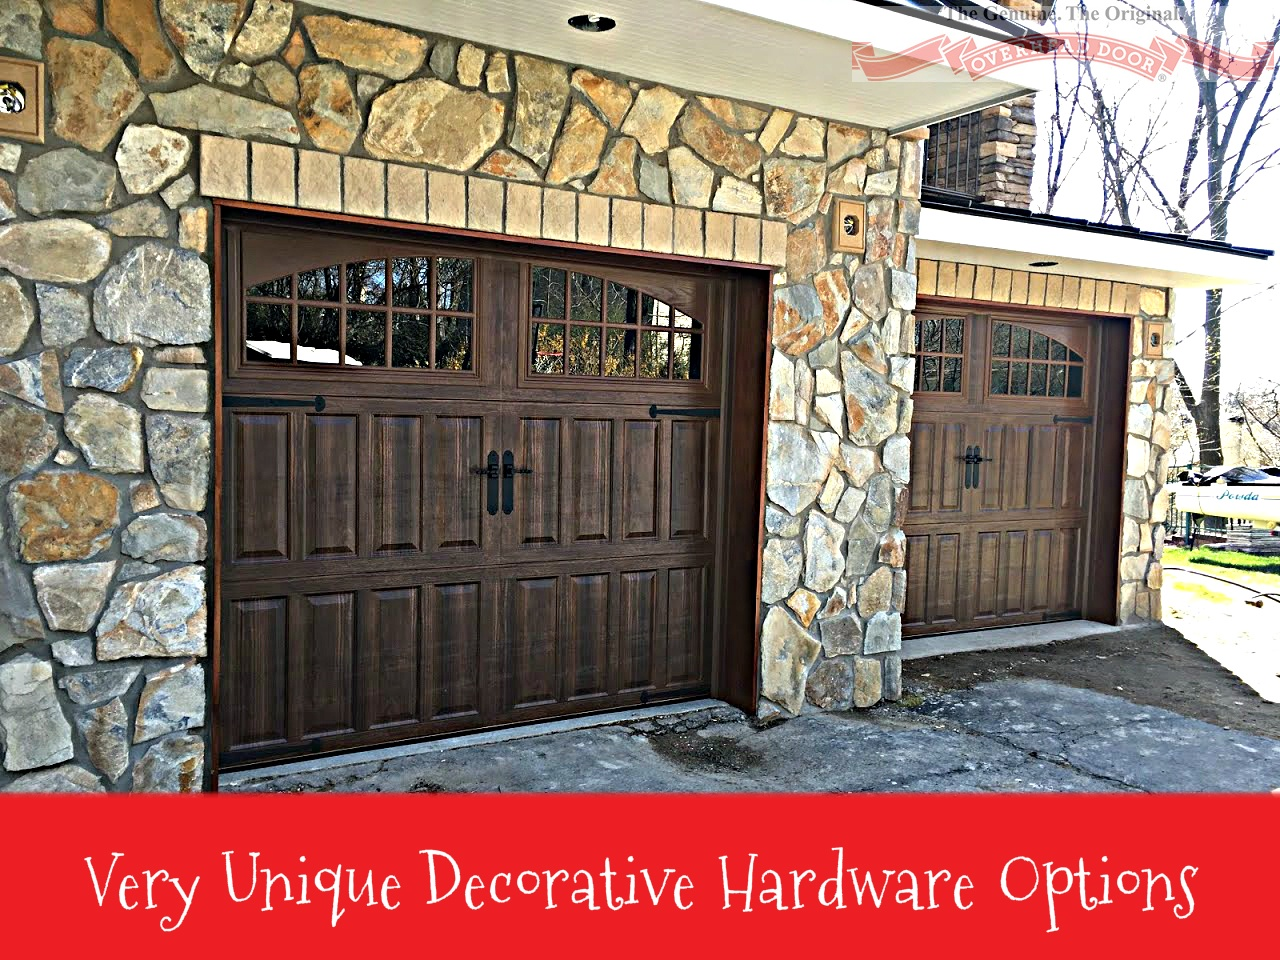 Very Unique Decorative Hardware Options; Door Hinges And Handles; Garage  Door And Decorative Hardware